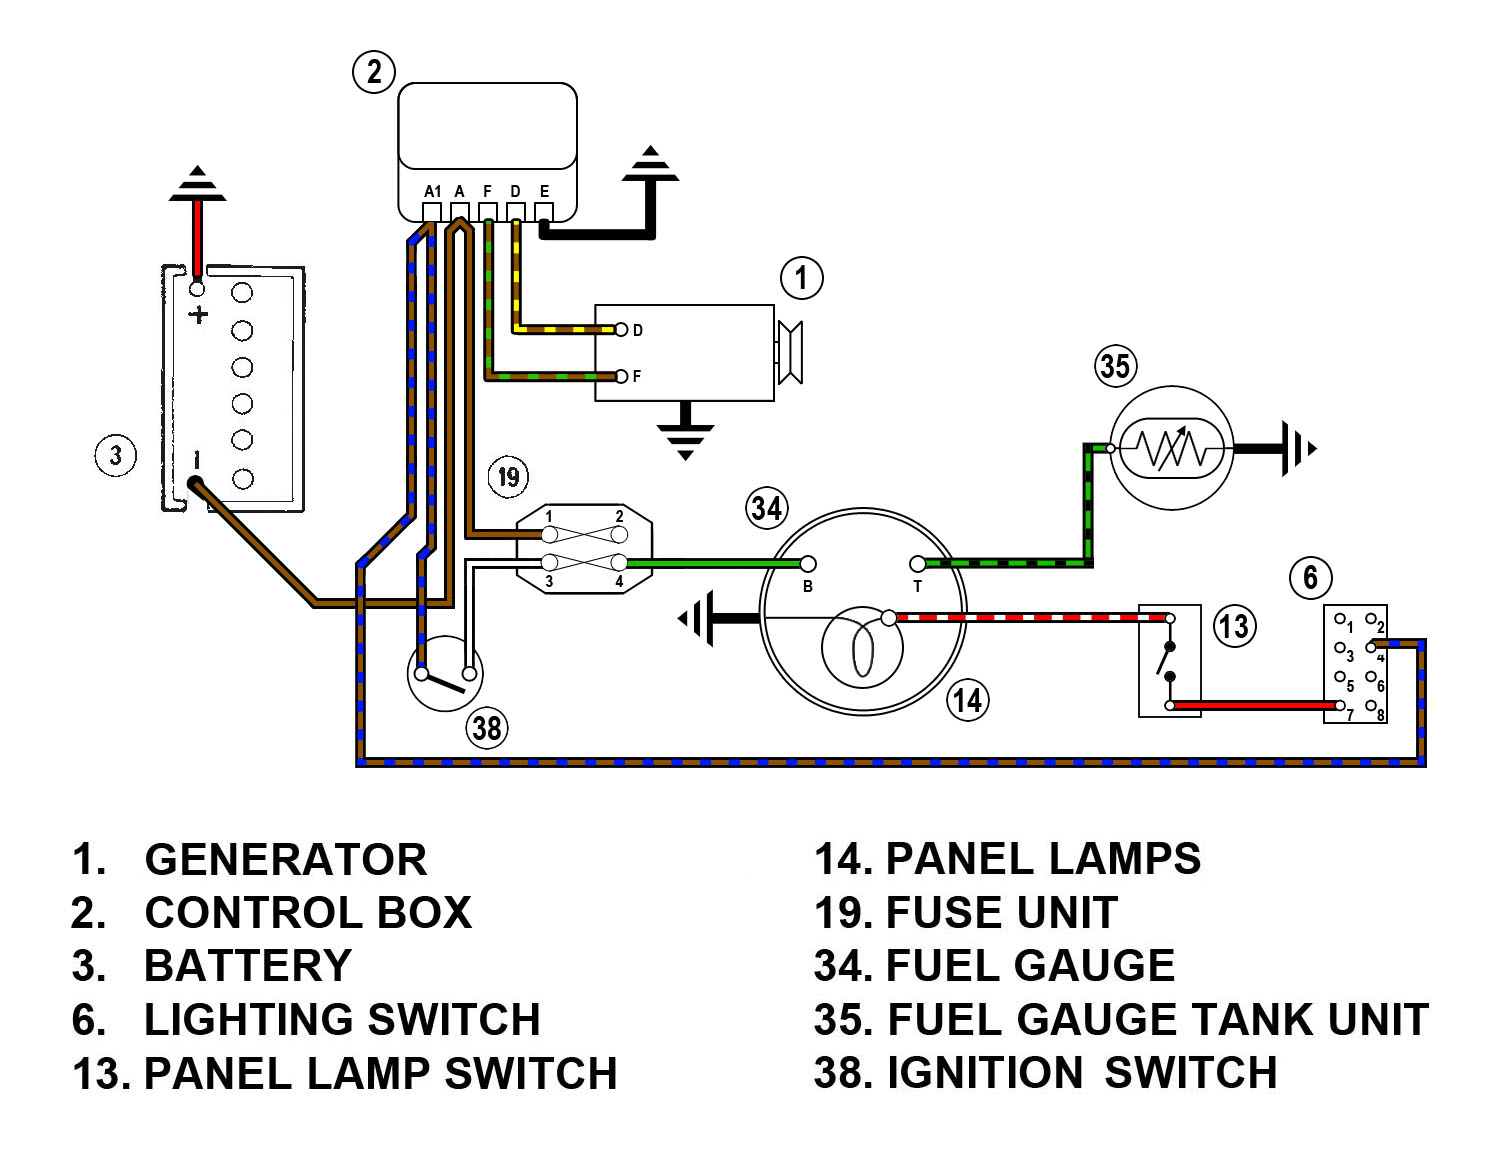 78 F150 Fuel Sender Wiring Automotive Diagram Safe Ford Gauge Todays Rh 1 11 12 1813weddingbarn Com Pump Relay Level